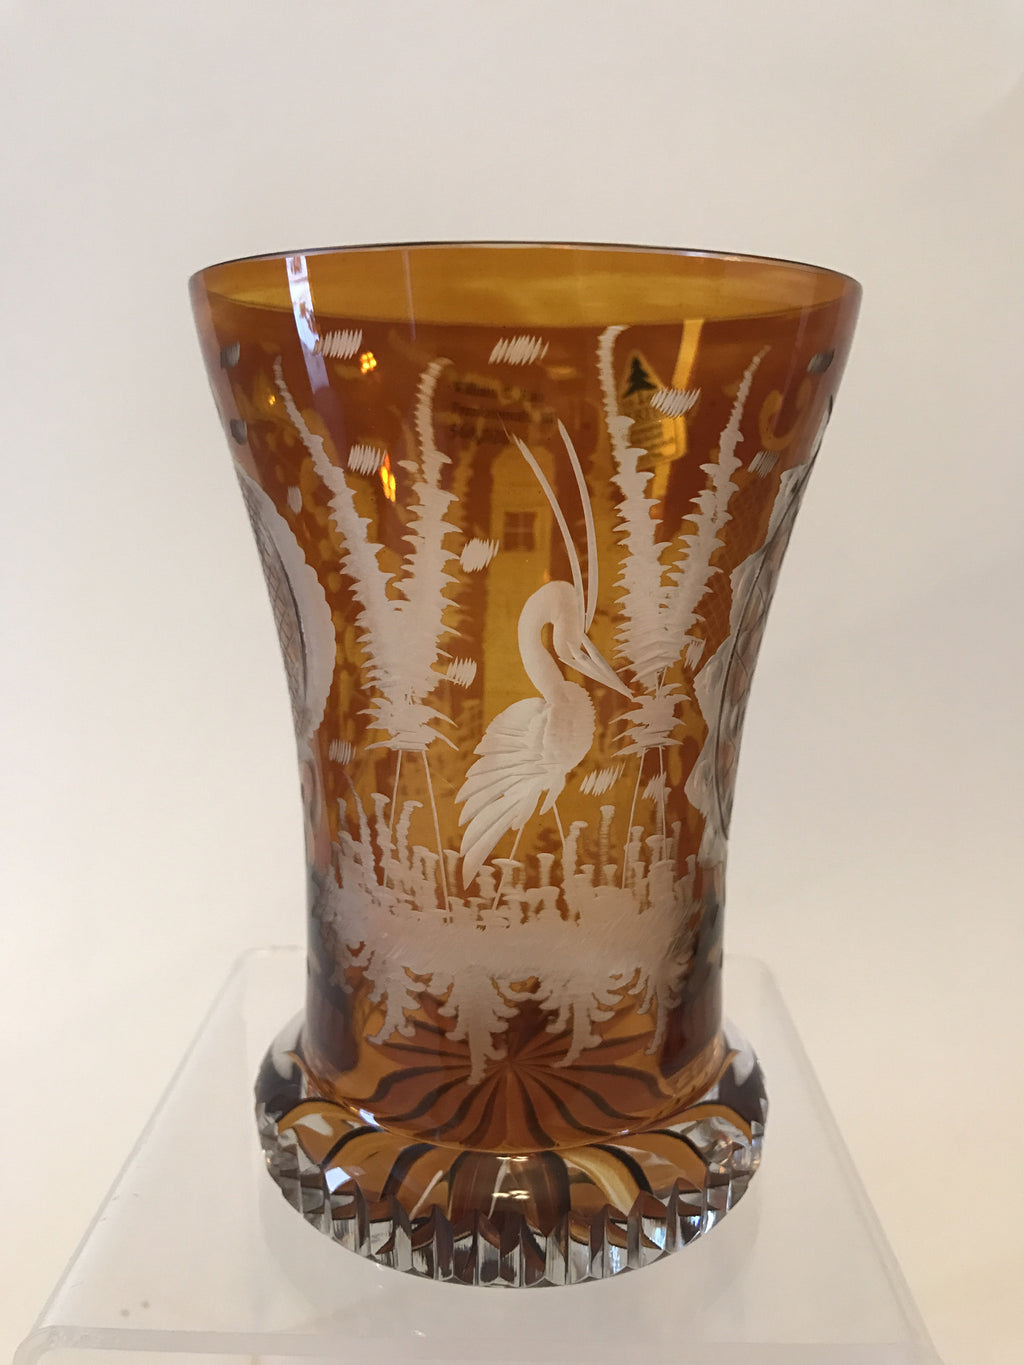 568020 Crystal Glass With Amber Flashed, Engraved Heron, Tall Building and two Decorated Designs, Bohemian Glassware, Antique, - ReeceFurniture.com - Free Local Pick Ups: Frankenmuth, MI, Indianapolis, IN, Chicago Ridge, IL, and Detroit, MI